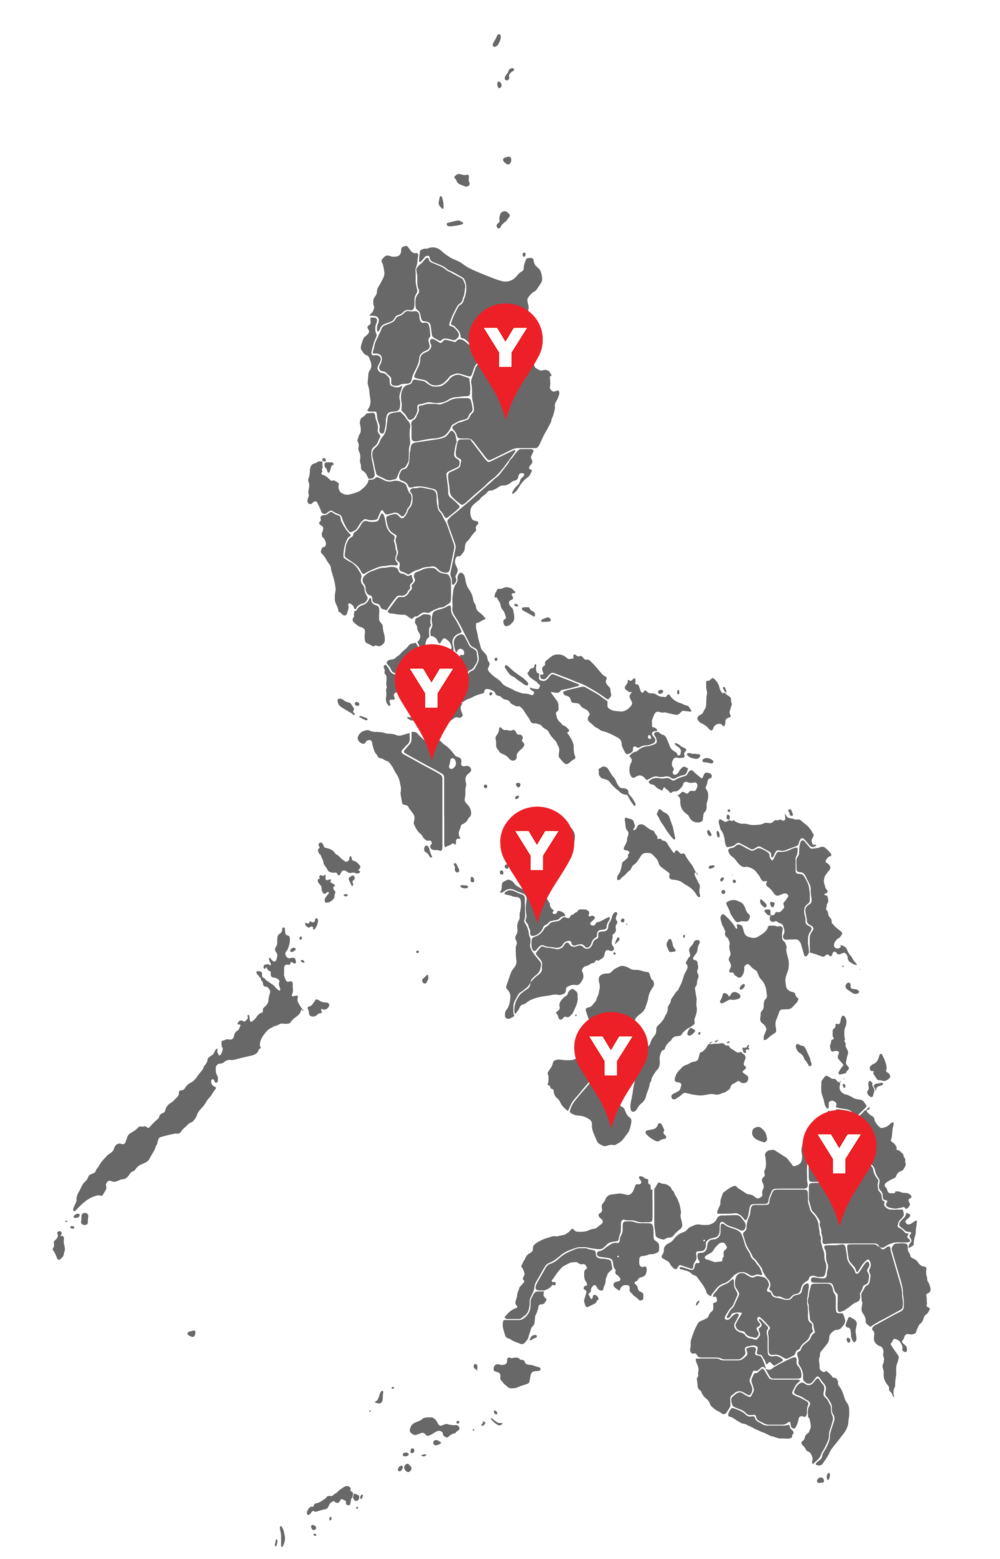 Philippine_pins.png